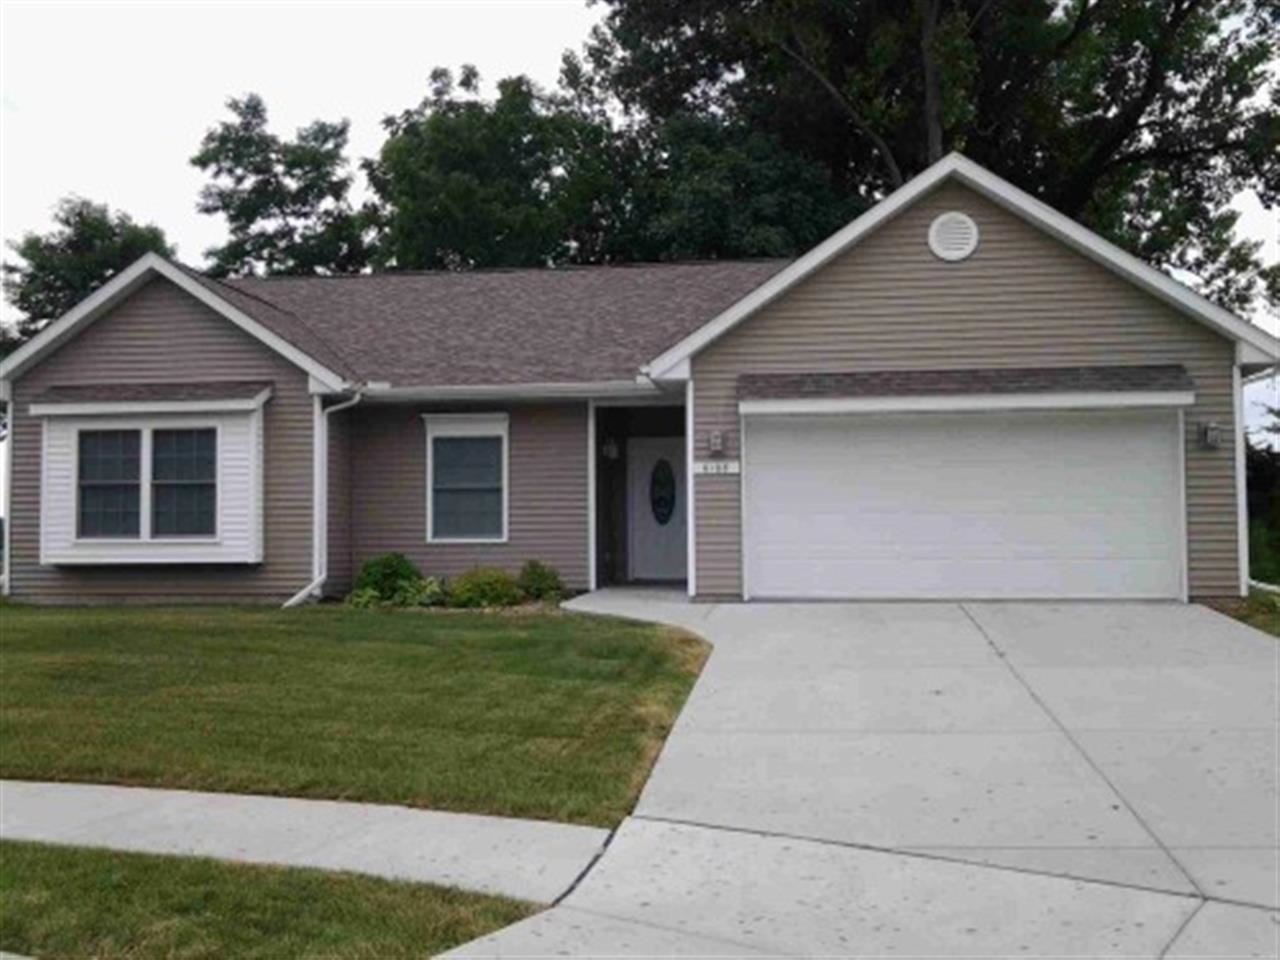 Rental Homes for Rent, ListingId:26442507, location: 6108 34TH AVE Moline 61265